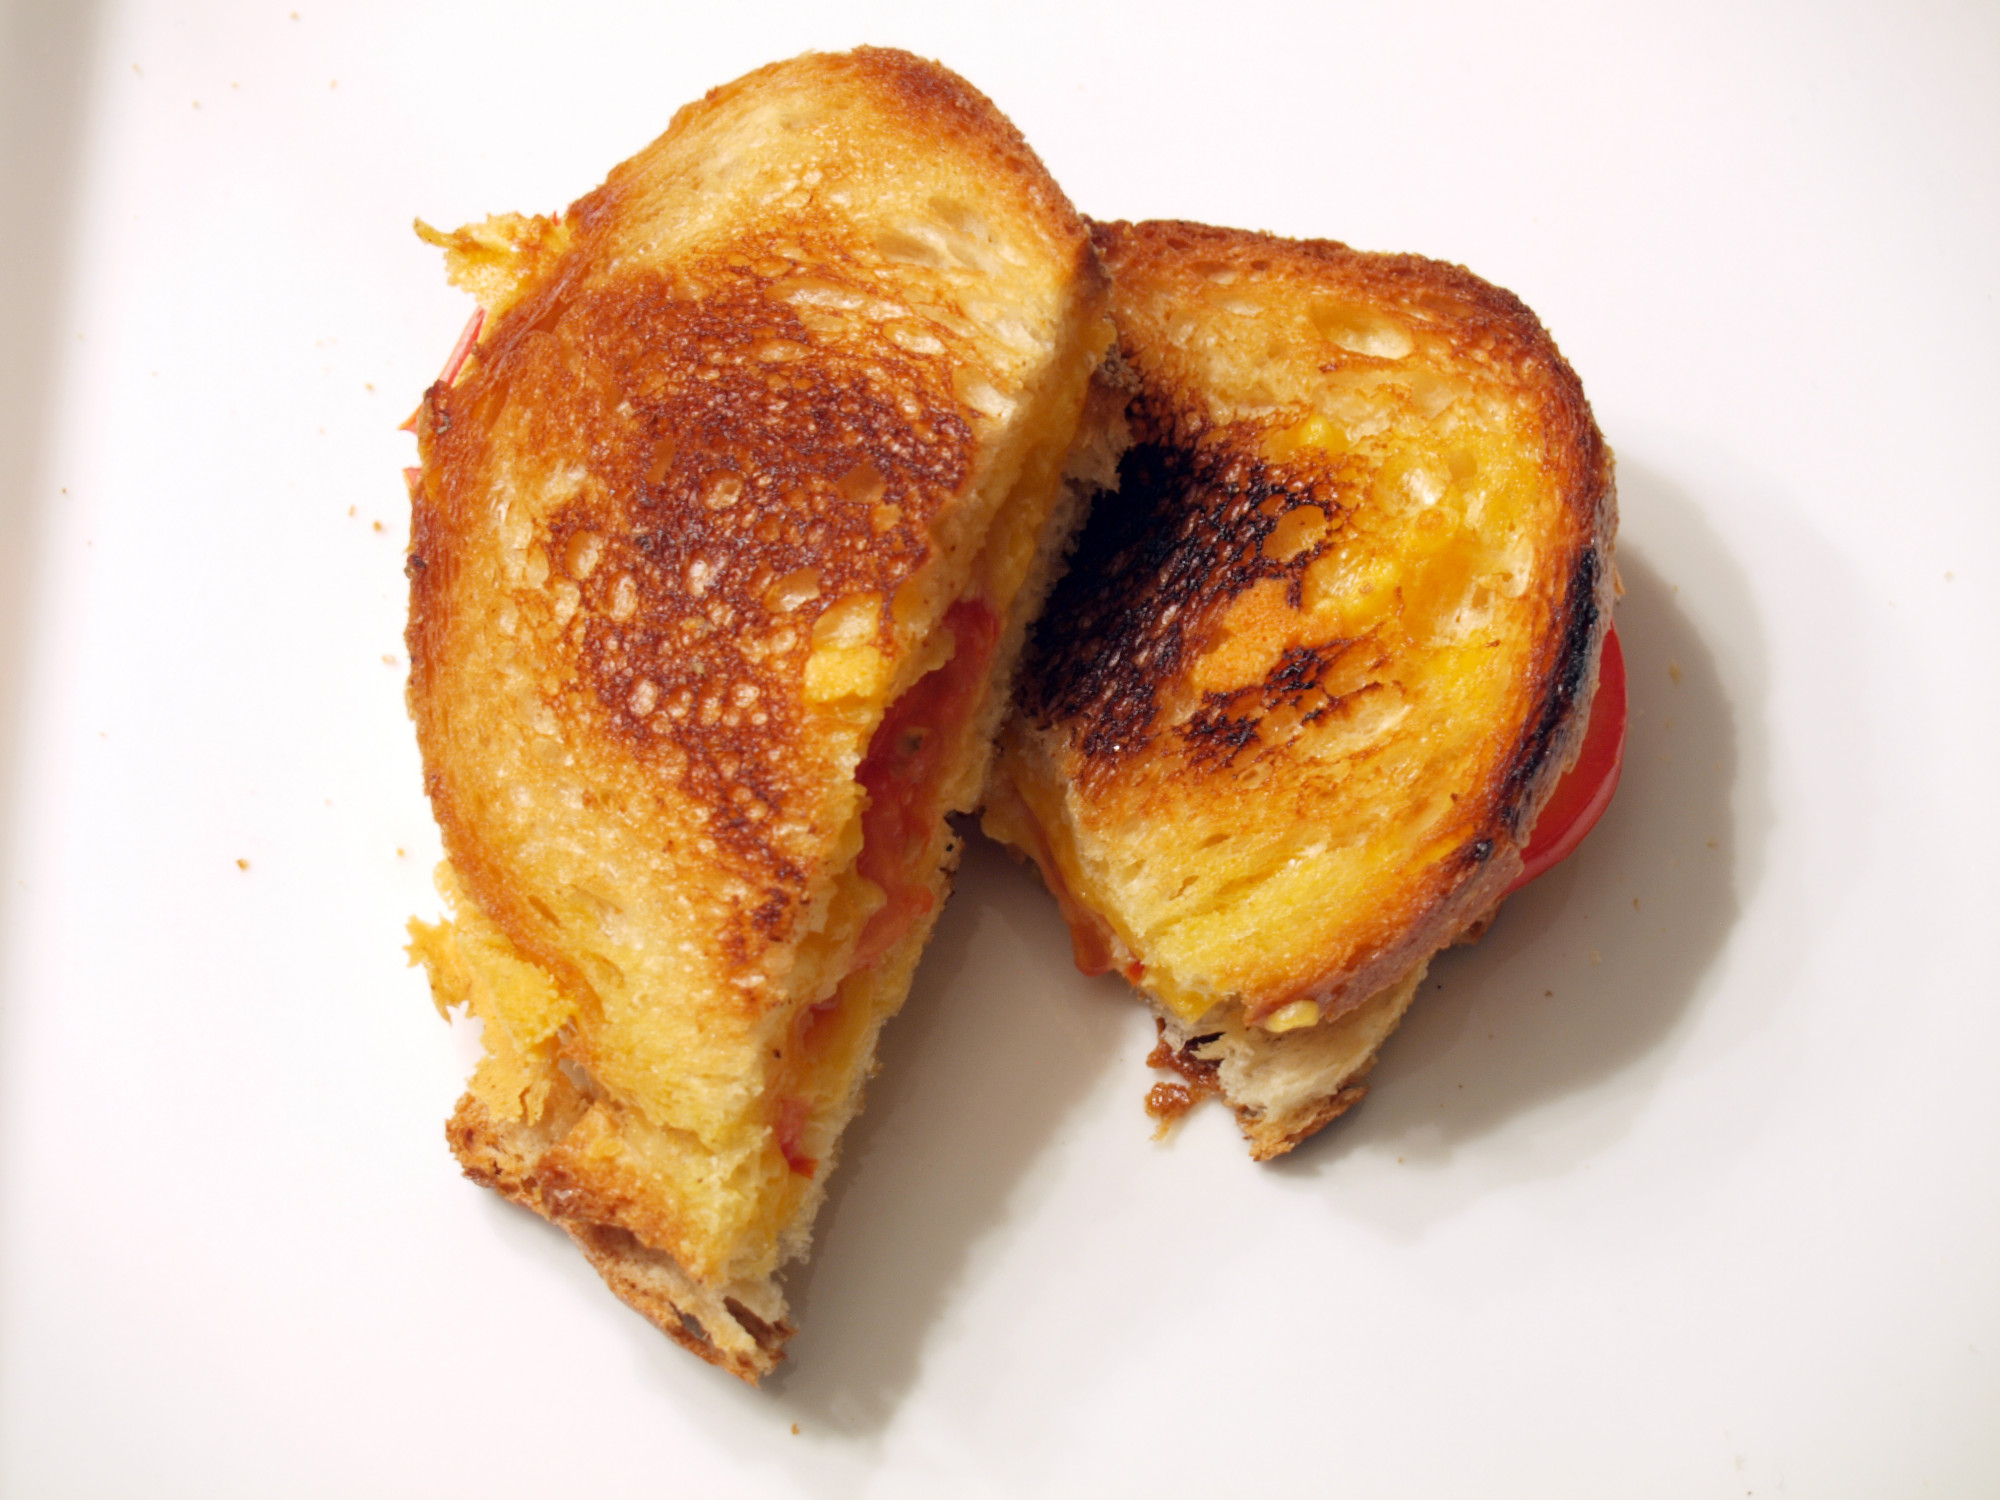 Tillamook Cheddar Grilled Cheese